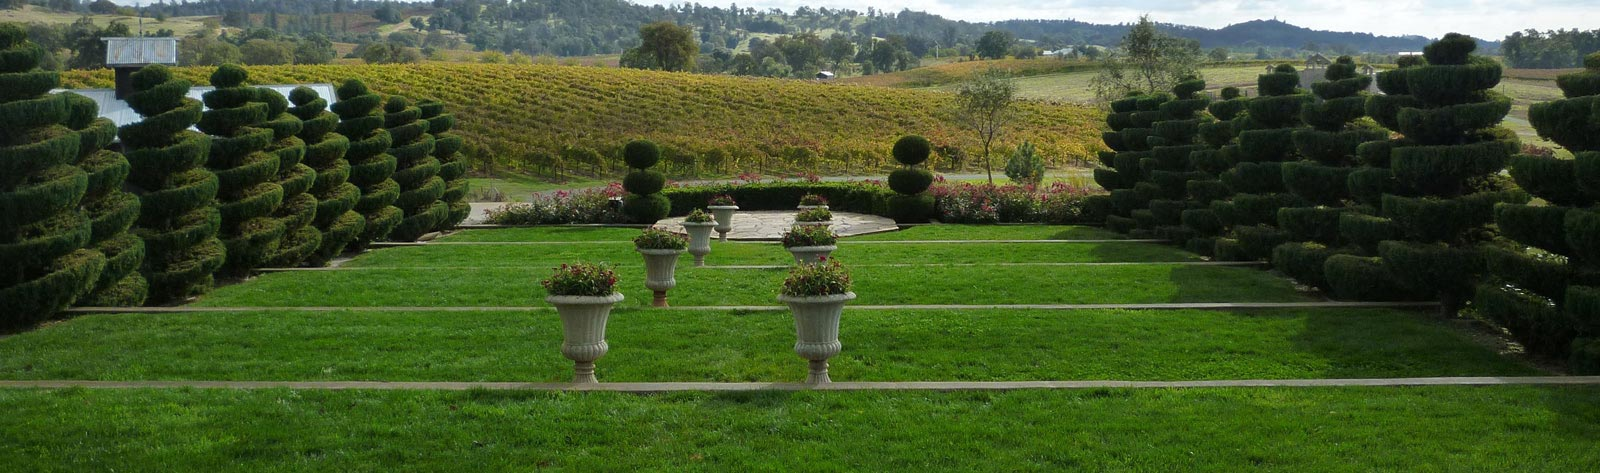 Amador Country Wine Tour